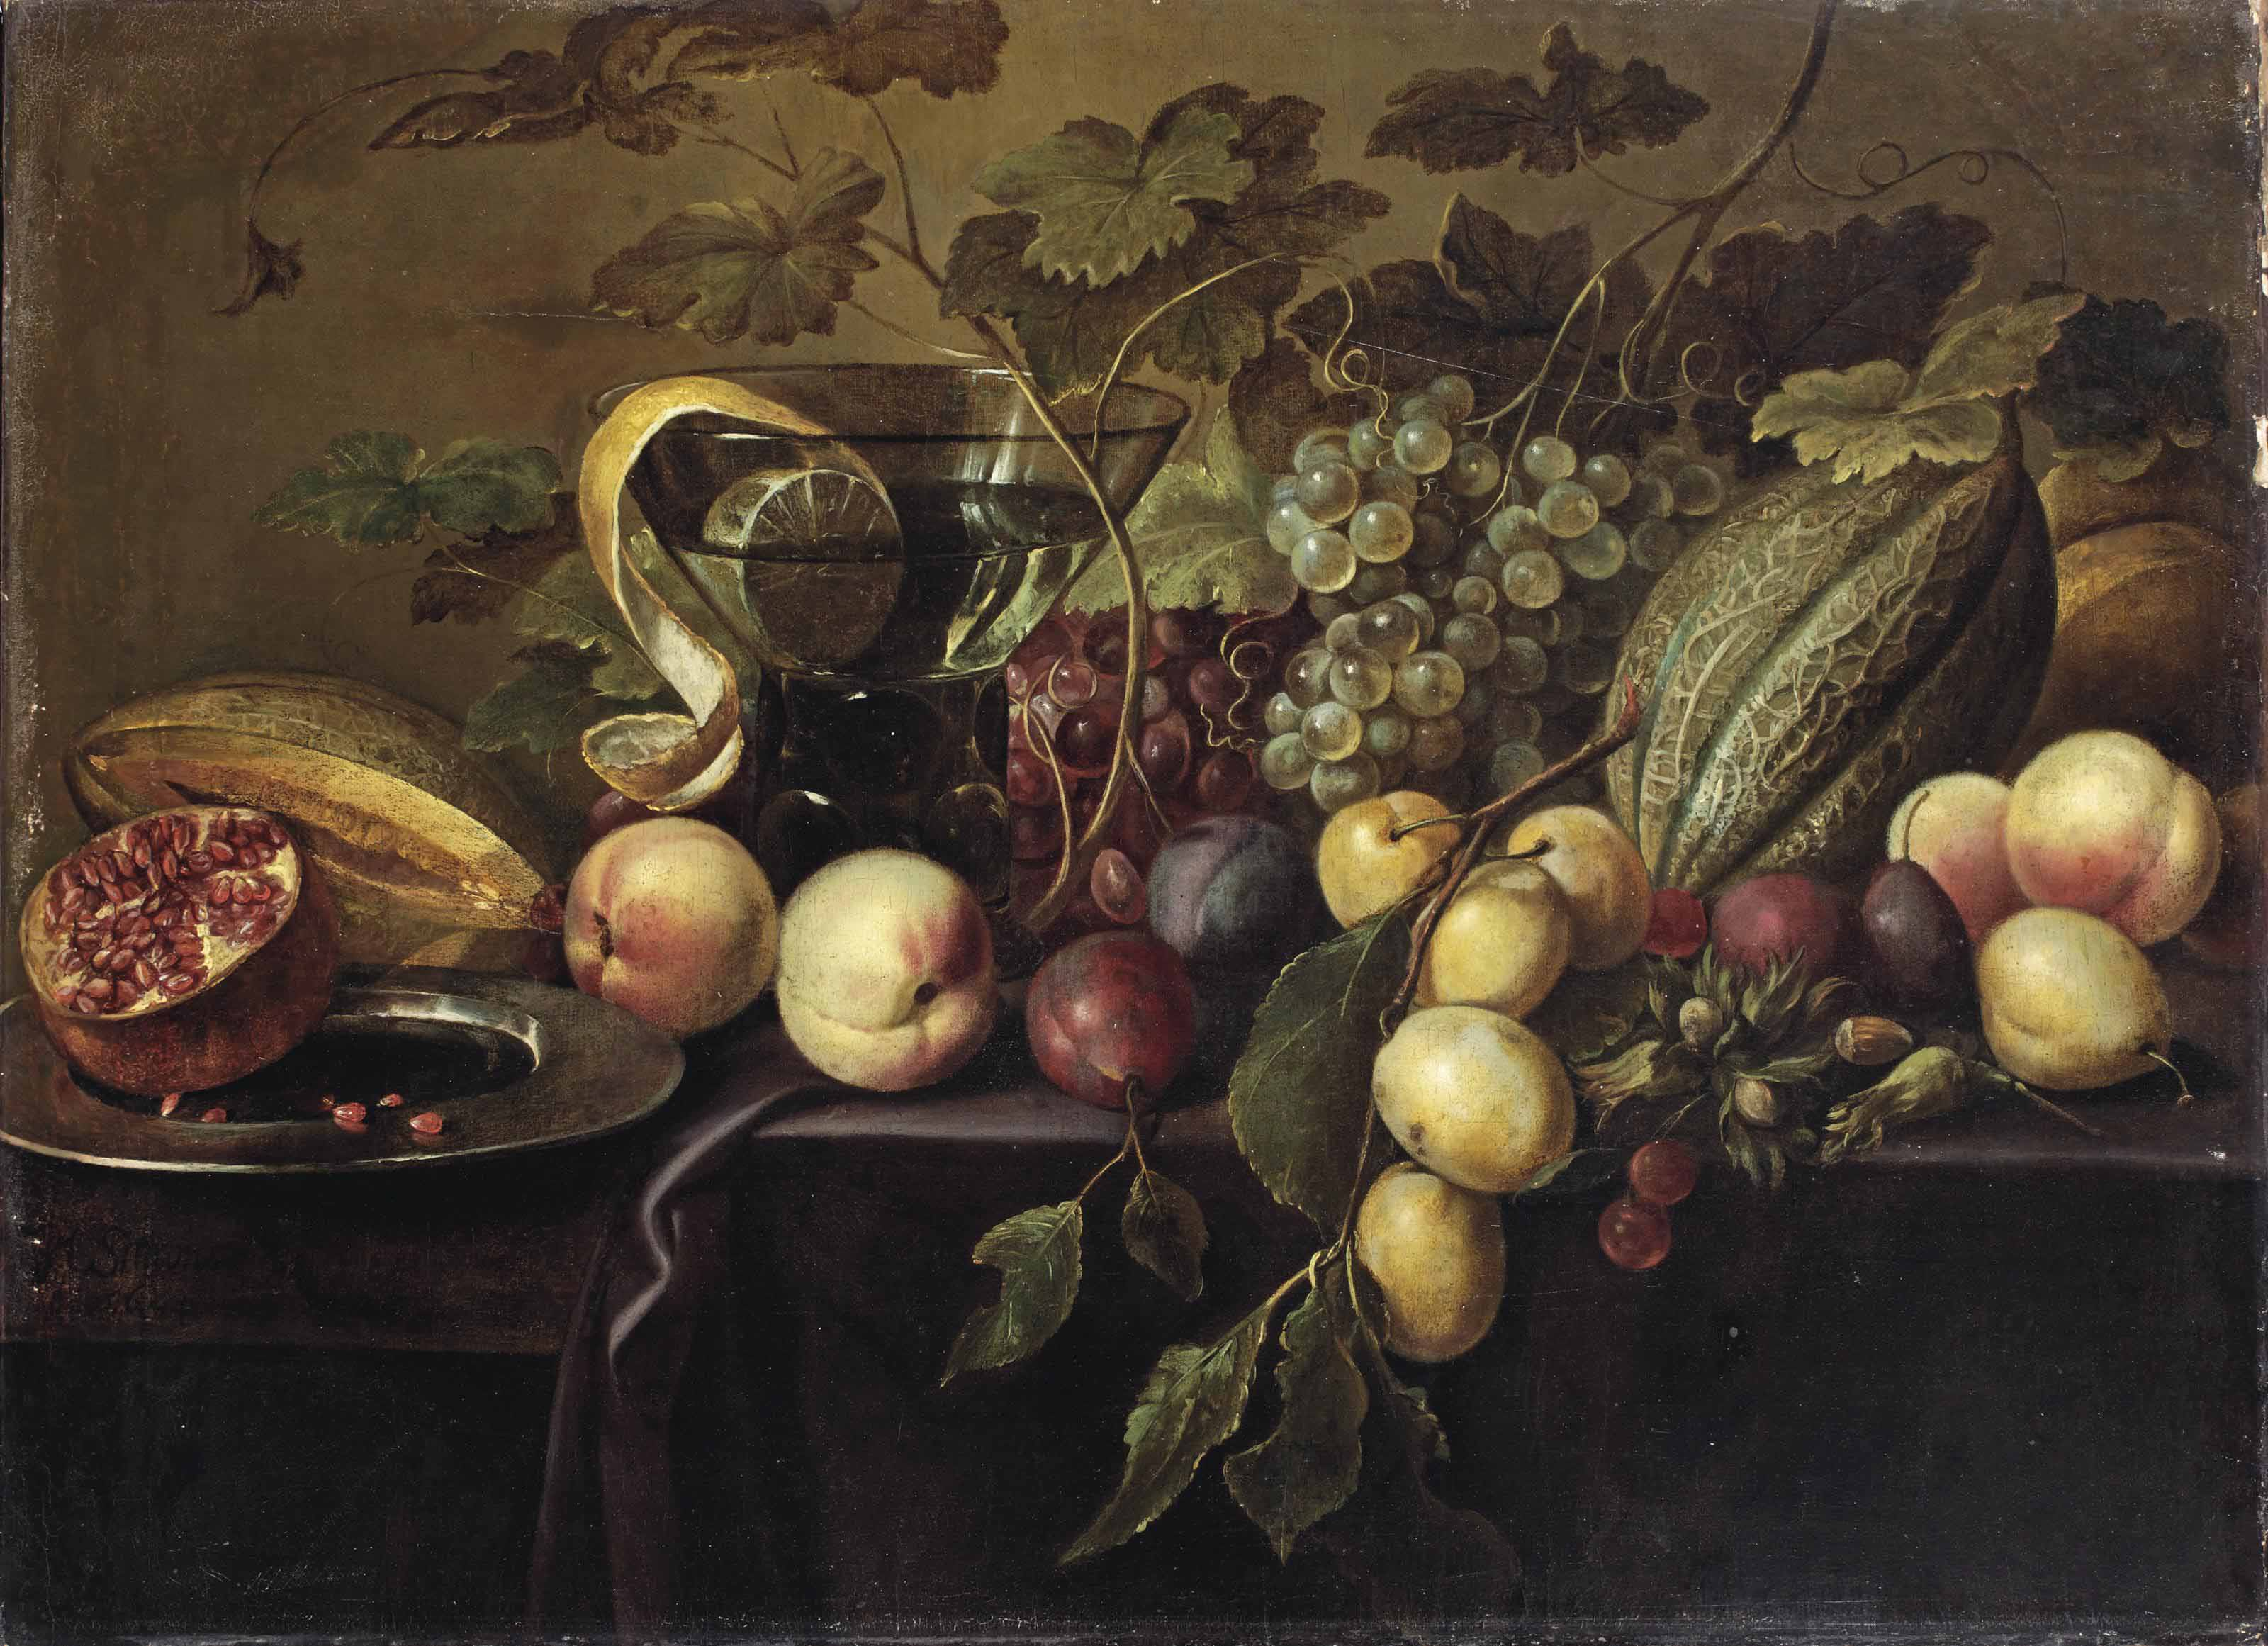 https://www.christies.com/img/LotImages/2014/AMS/2014_AMS_03047_0021_000(michiel_simons_plums_peaches_grapes_melons_a_half_pomegranate_and_a_pe).jpg